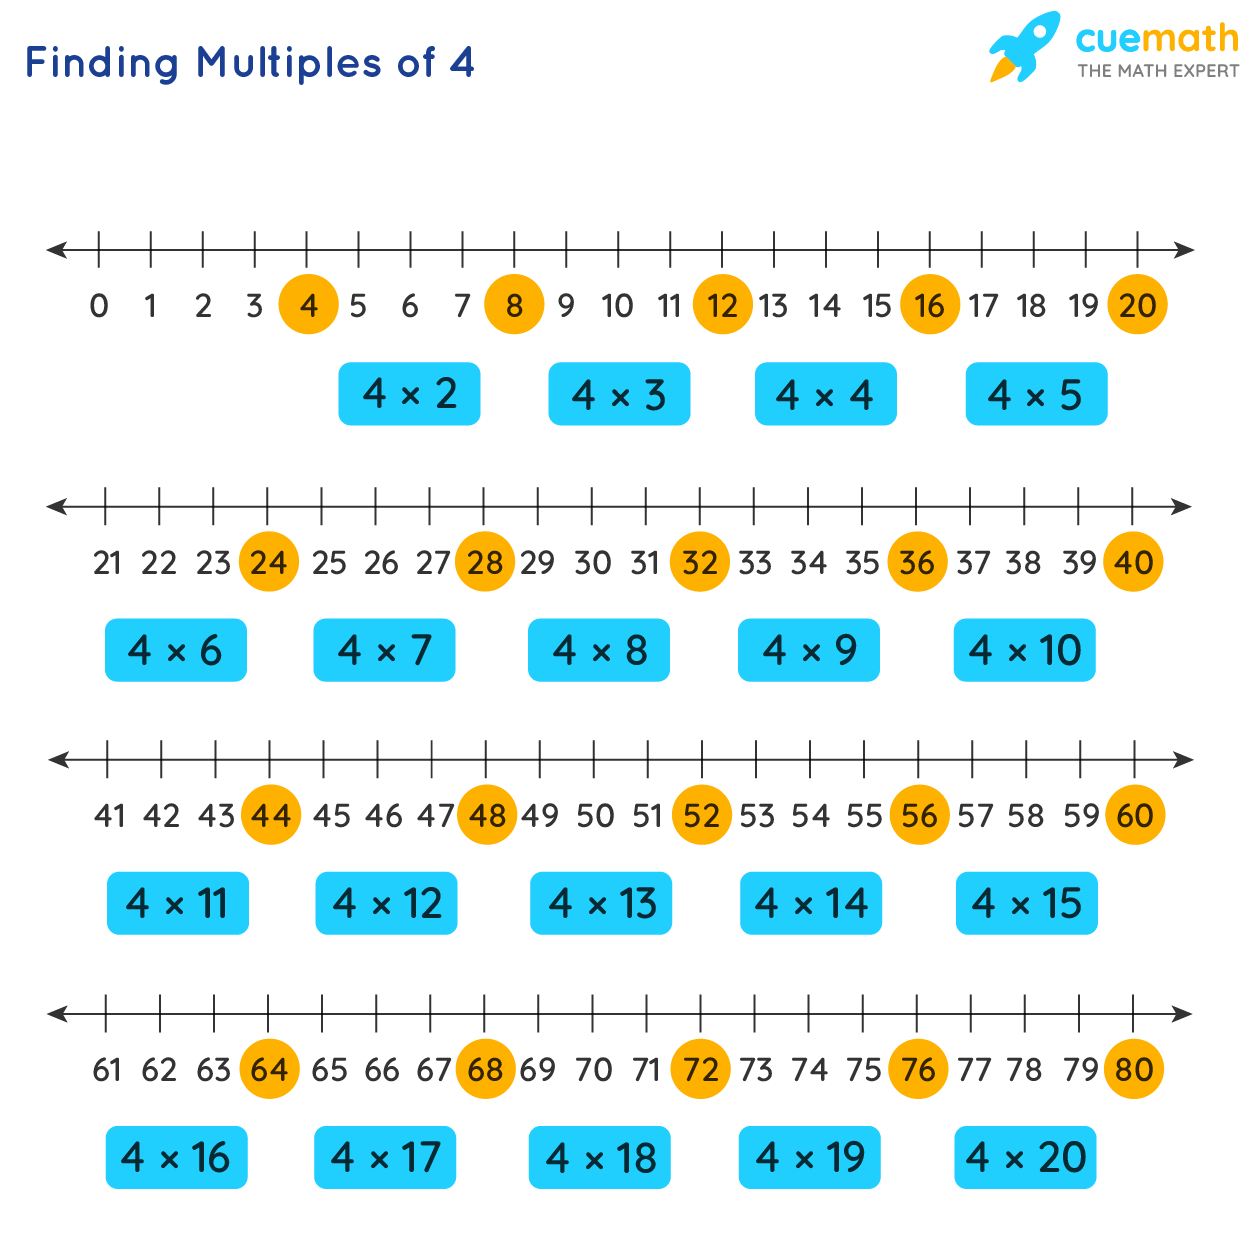 Finding Multiples of 4